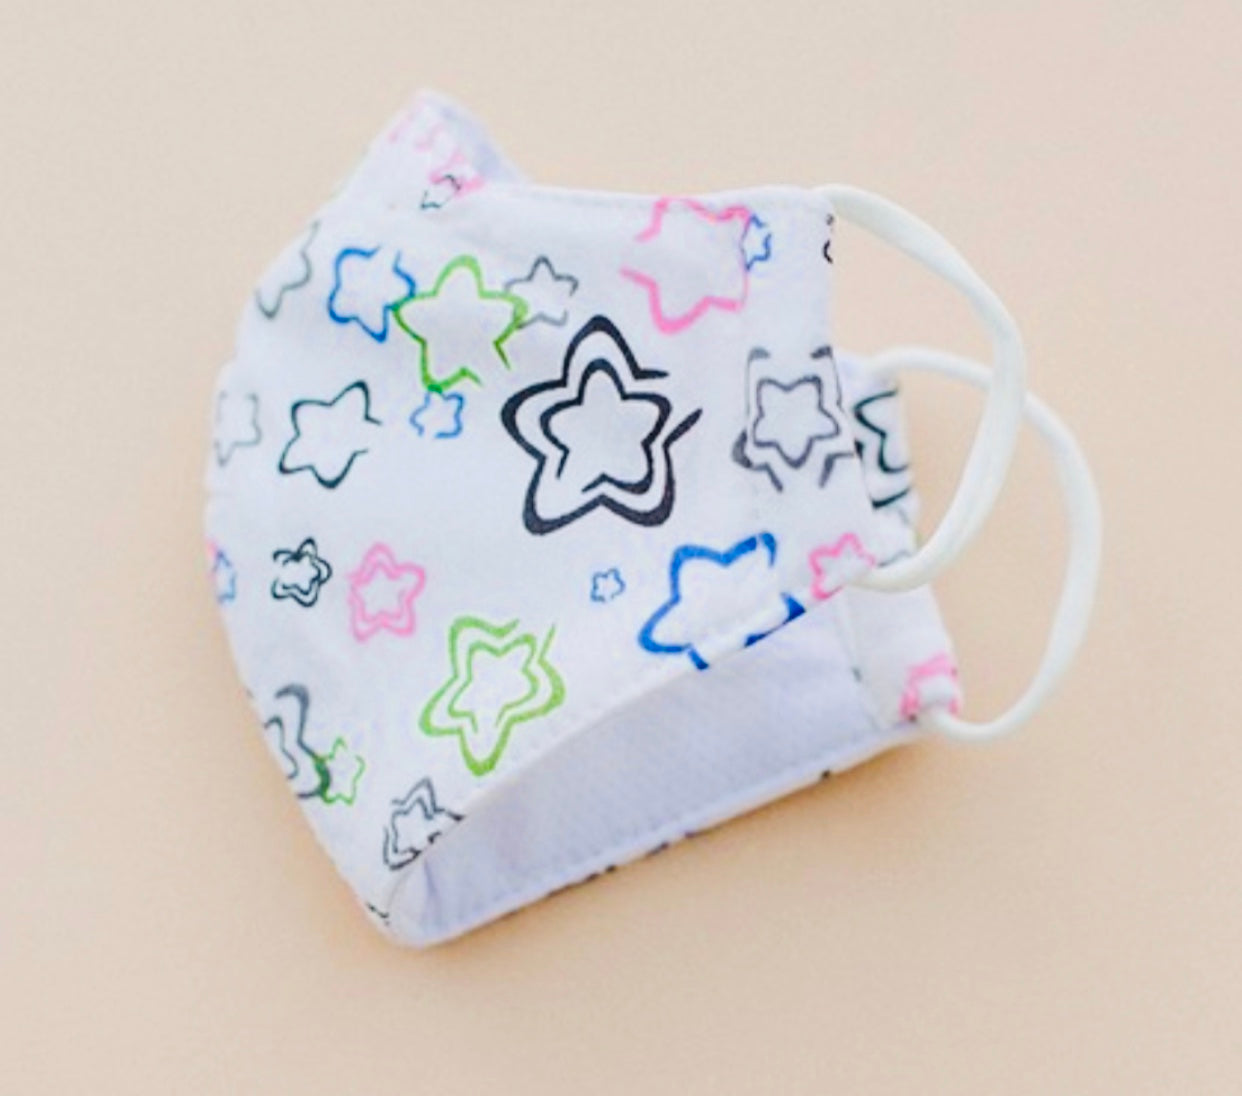 3 Layer Cotton Mask Kid size